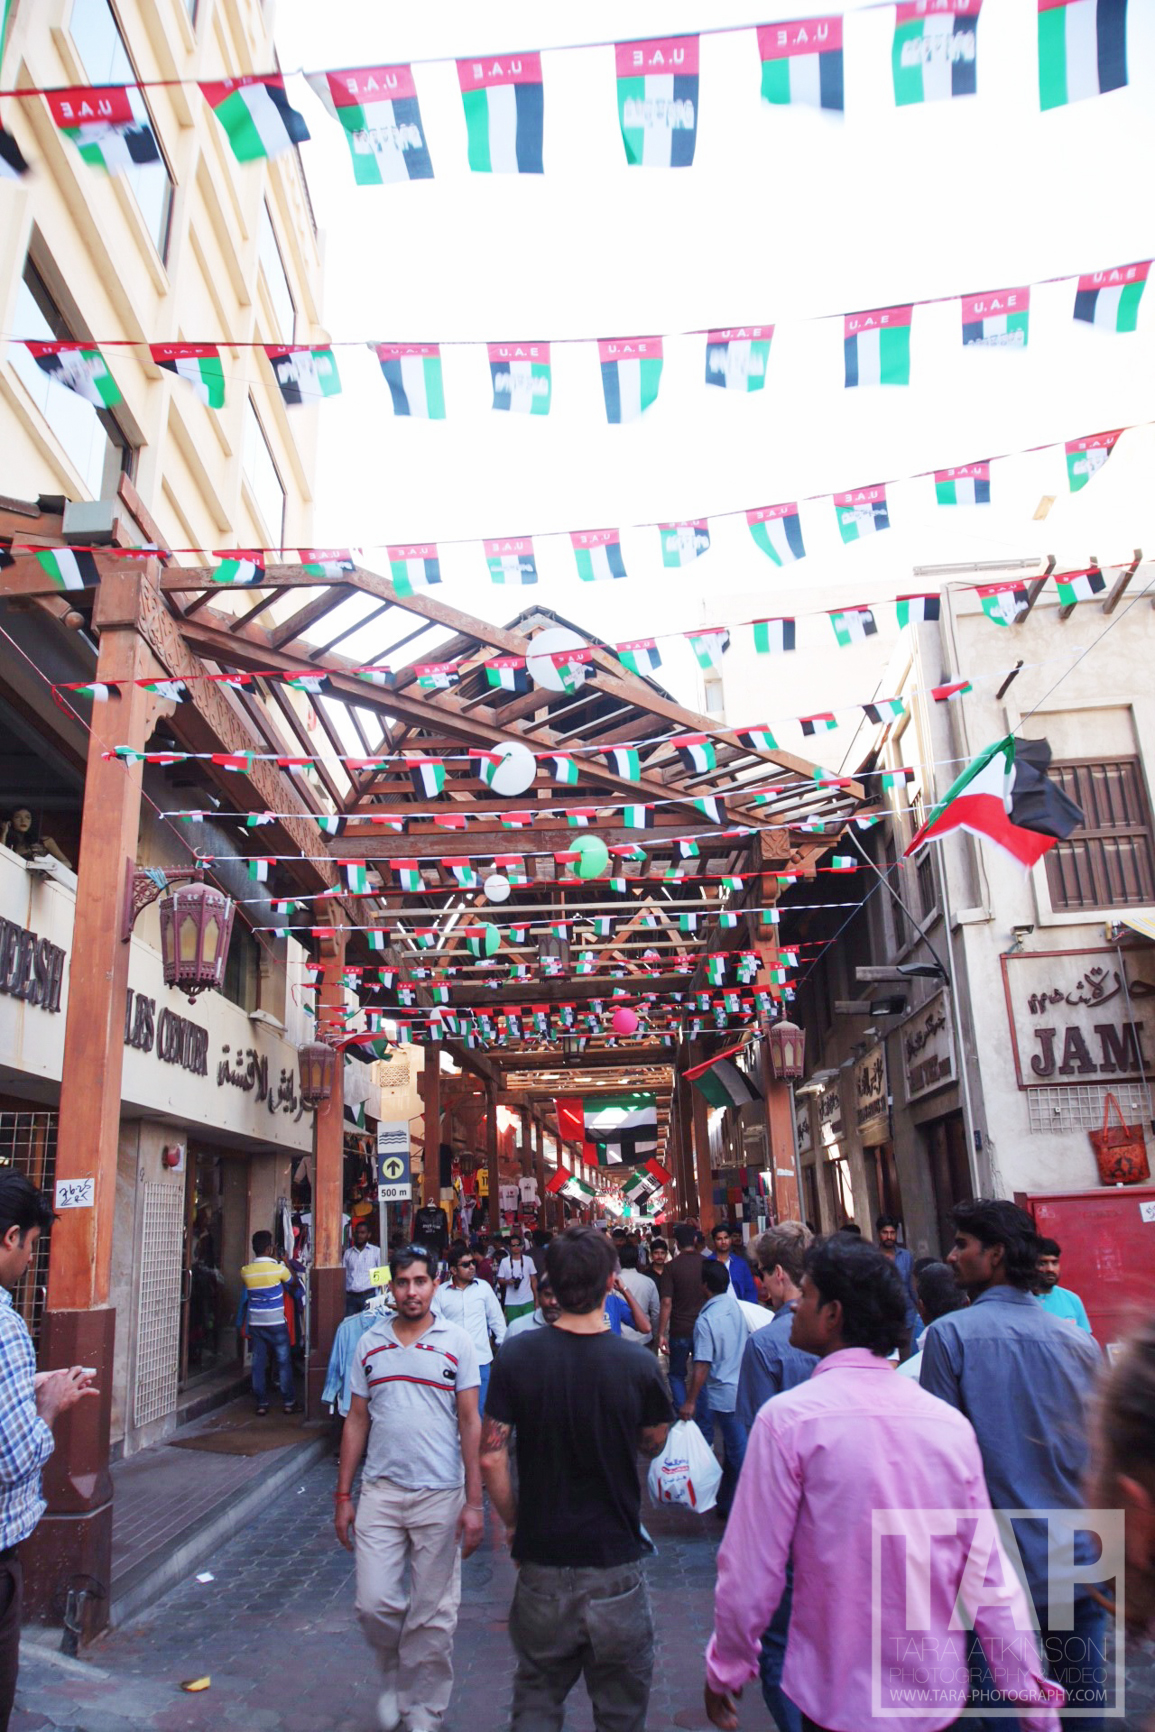 Even on a holiday some of the shops are still open and the souk is still busy